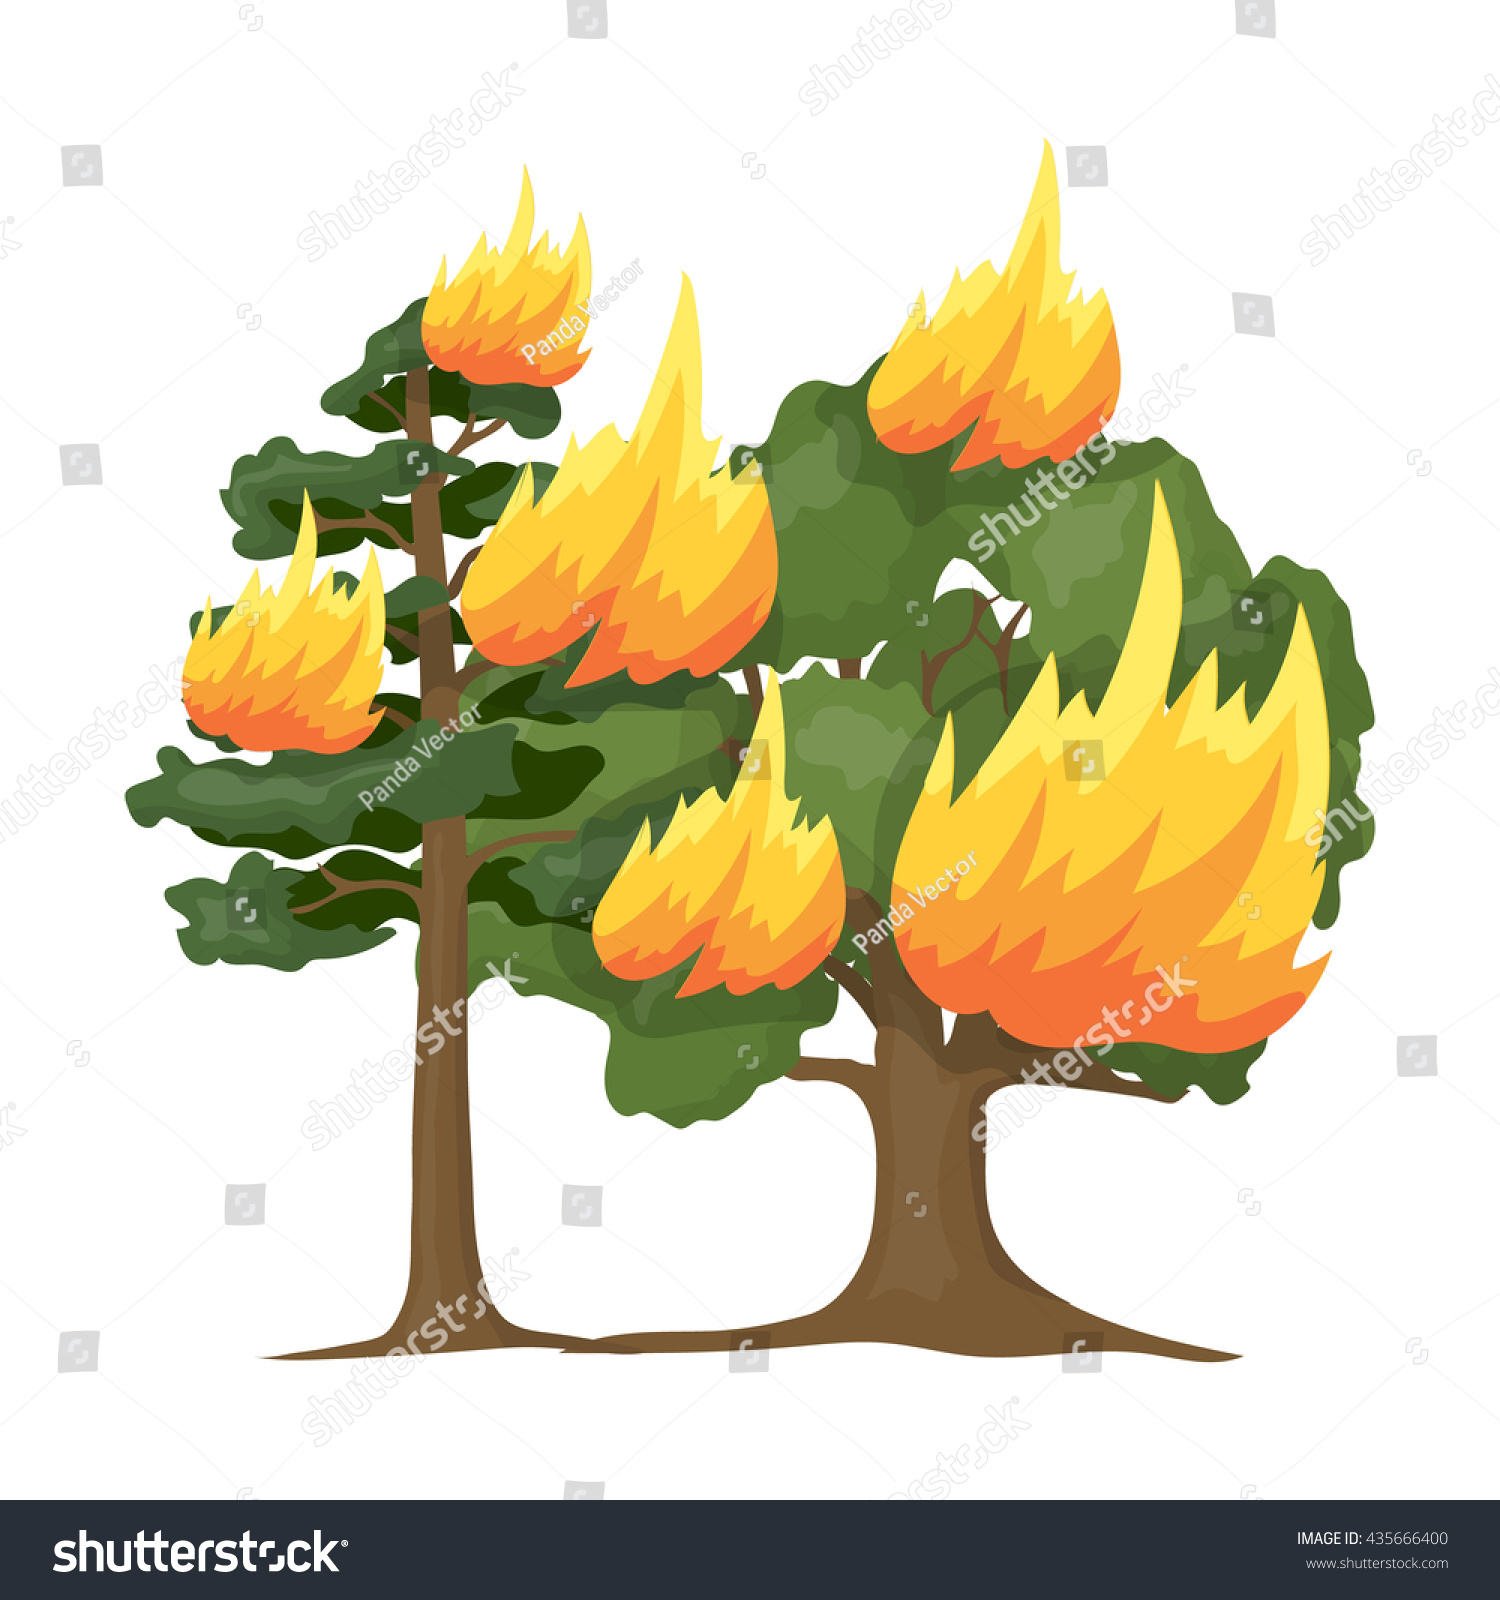 Forest Fire Vector Illustration Icon Cartoon Stock Vector Royalty Free 435666400 Choose from 480000+ cartoon fire tree graphic resources and download in the form of png, eps, ai or psd. https www shutterstock com image vector forest fire vector illustration icon cartoon 435666400